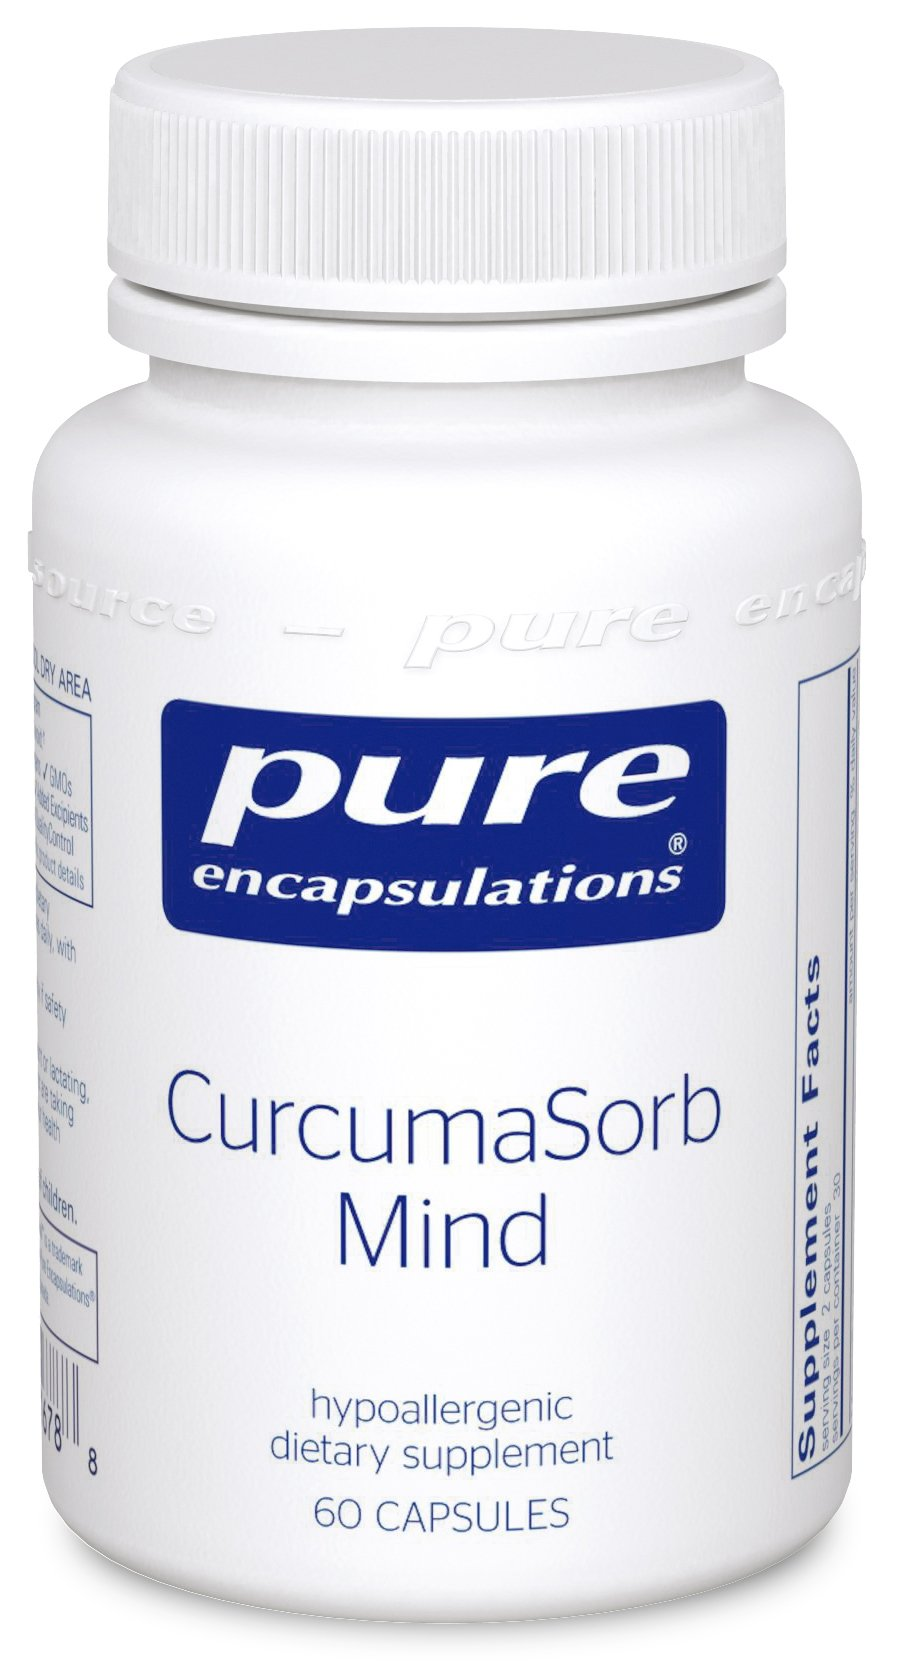 Pure Encapsulations - CurcumaSorb Mind - Hypoallergenic Blend with Curcumin and Polyphenols to Promote Mood, Memory and Mental Sharpness* - 60 Capsules